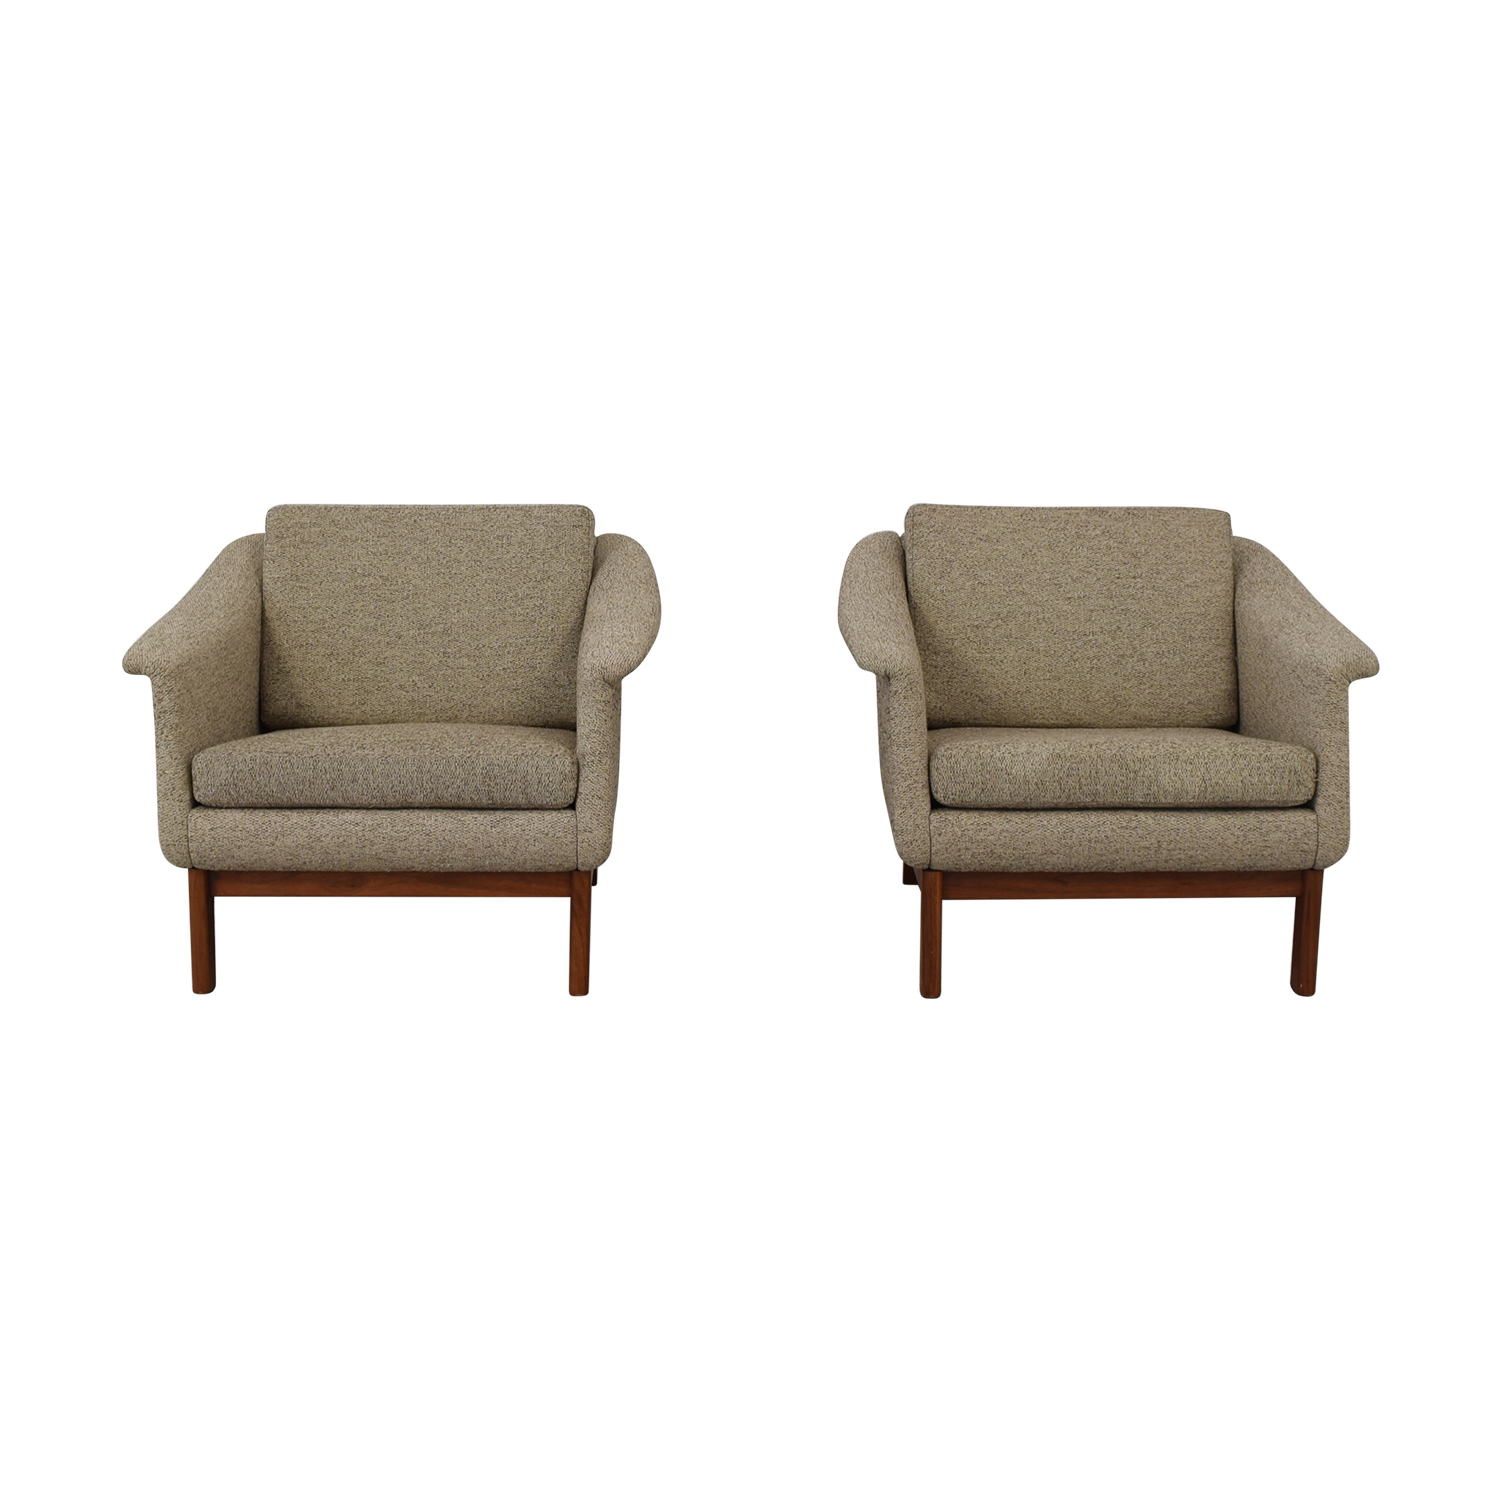 DUX DUX Mid Century Lounge Chairs price